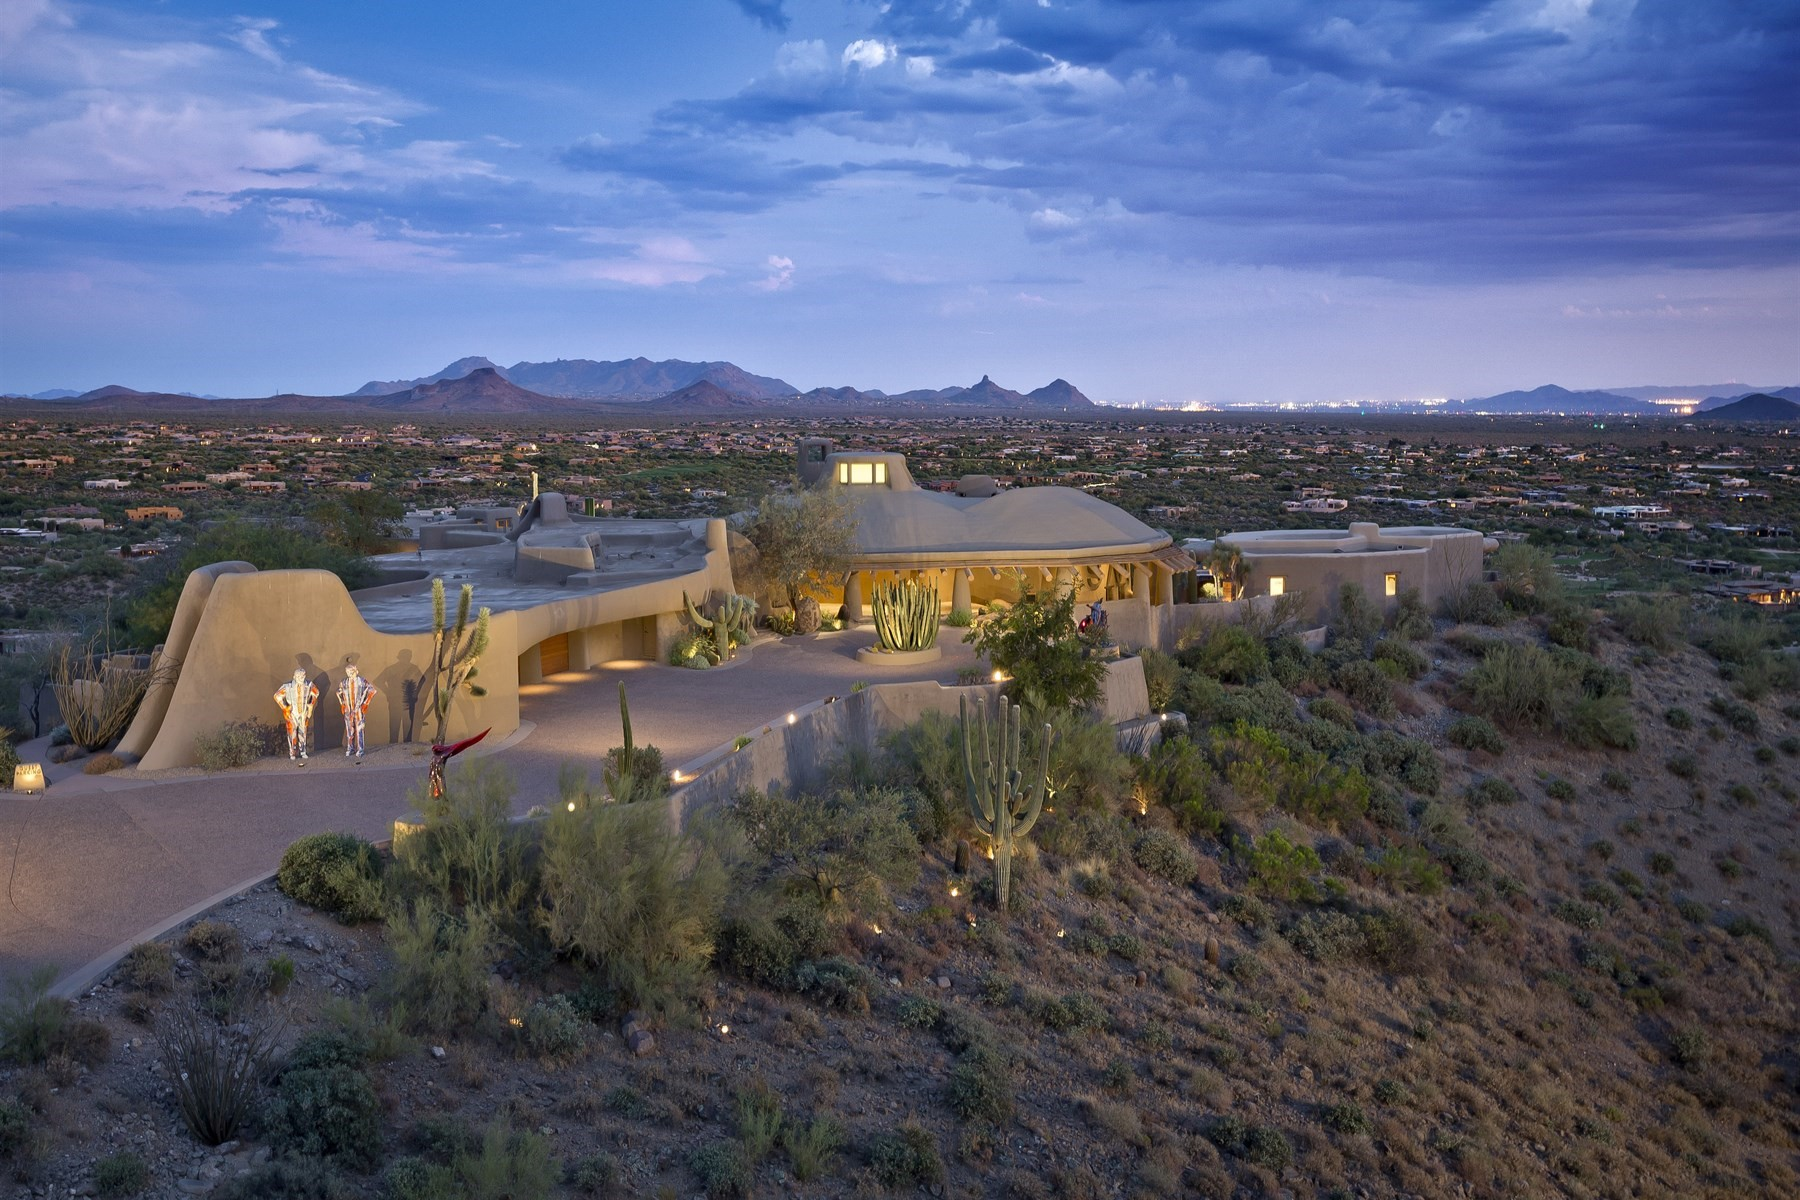 獨棟家庭住宅 為 出售 在 One-of-a-kind 15-acre estate that towers over the valley 39029 N Alister McKenzie Dr, Scottsdale, 亞利桑那州, 85262 美國